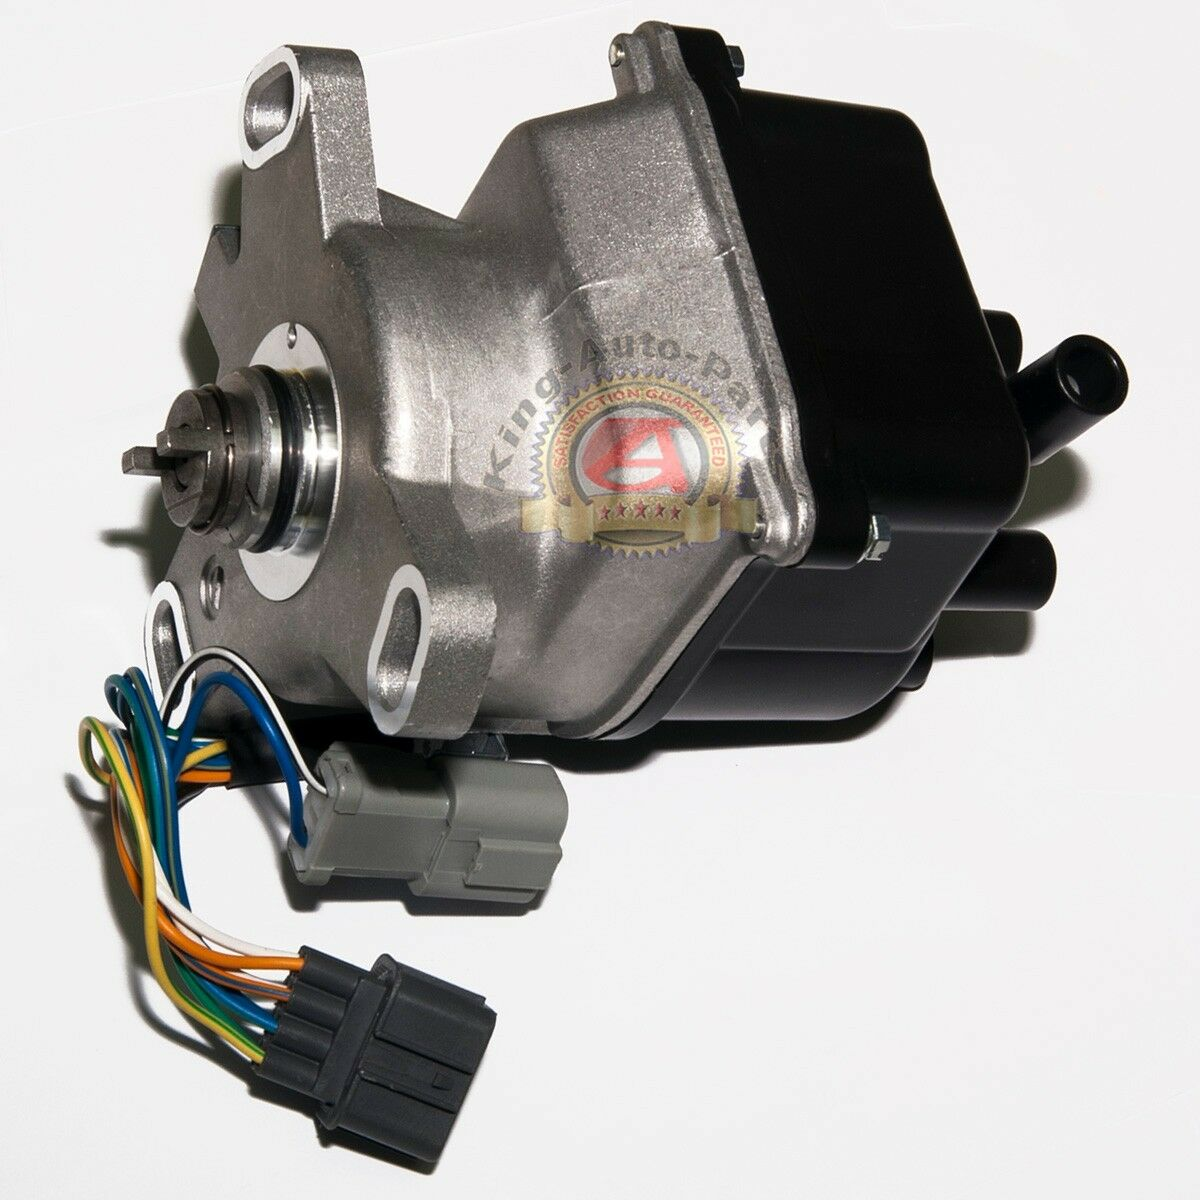 gm hei external coil wiring diagram 92 accord external coil wiring diagram ignition distributor 92 95 honda accord prelude 2 2l #1